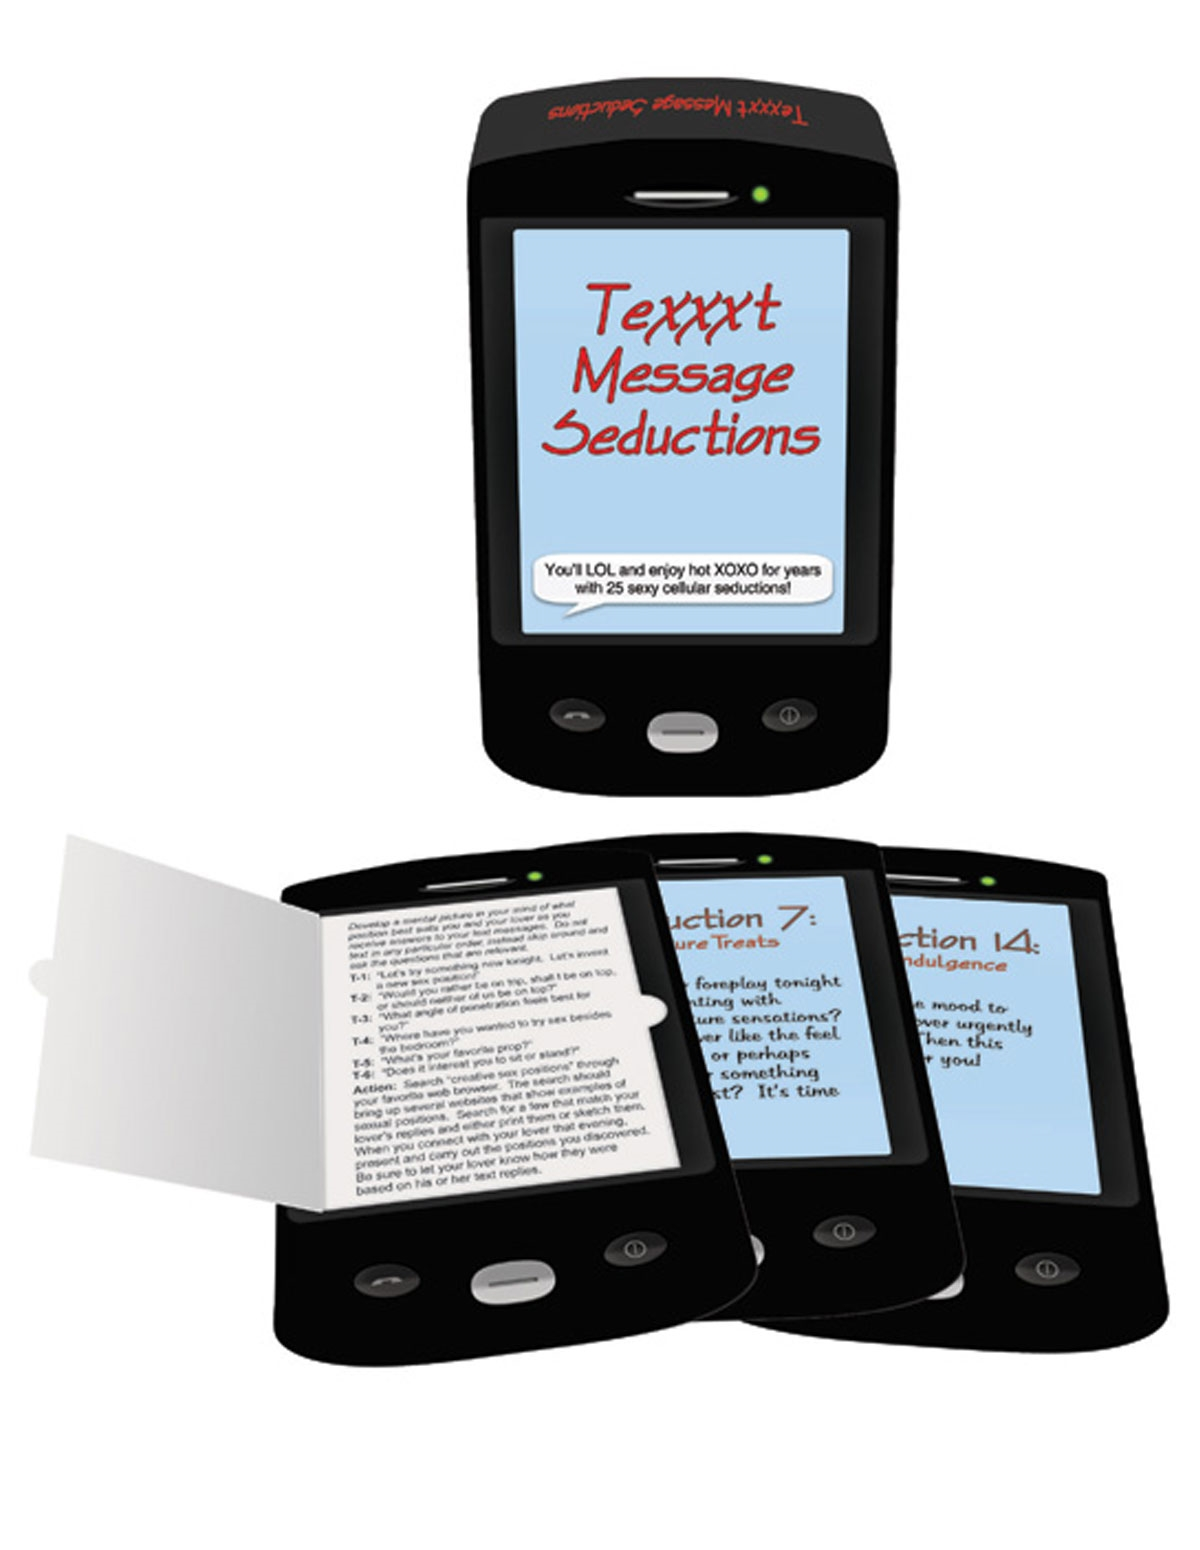 Texxxt Message Seductions